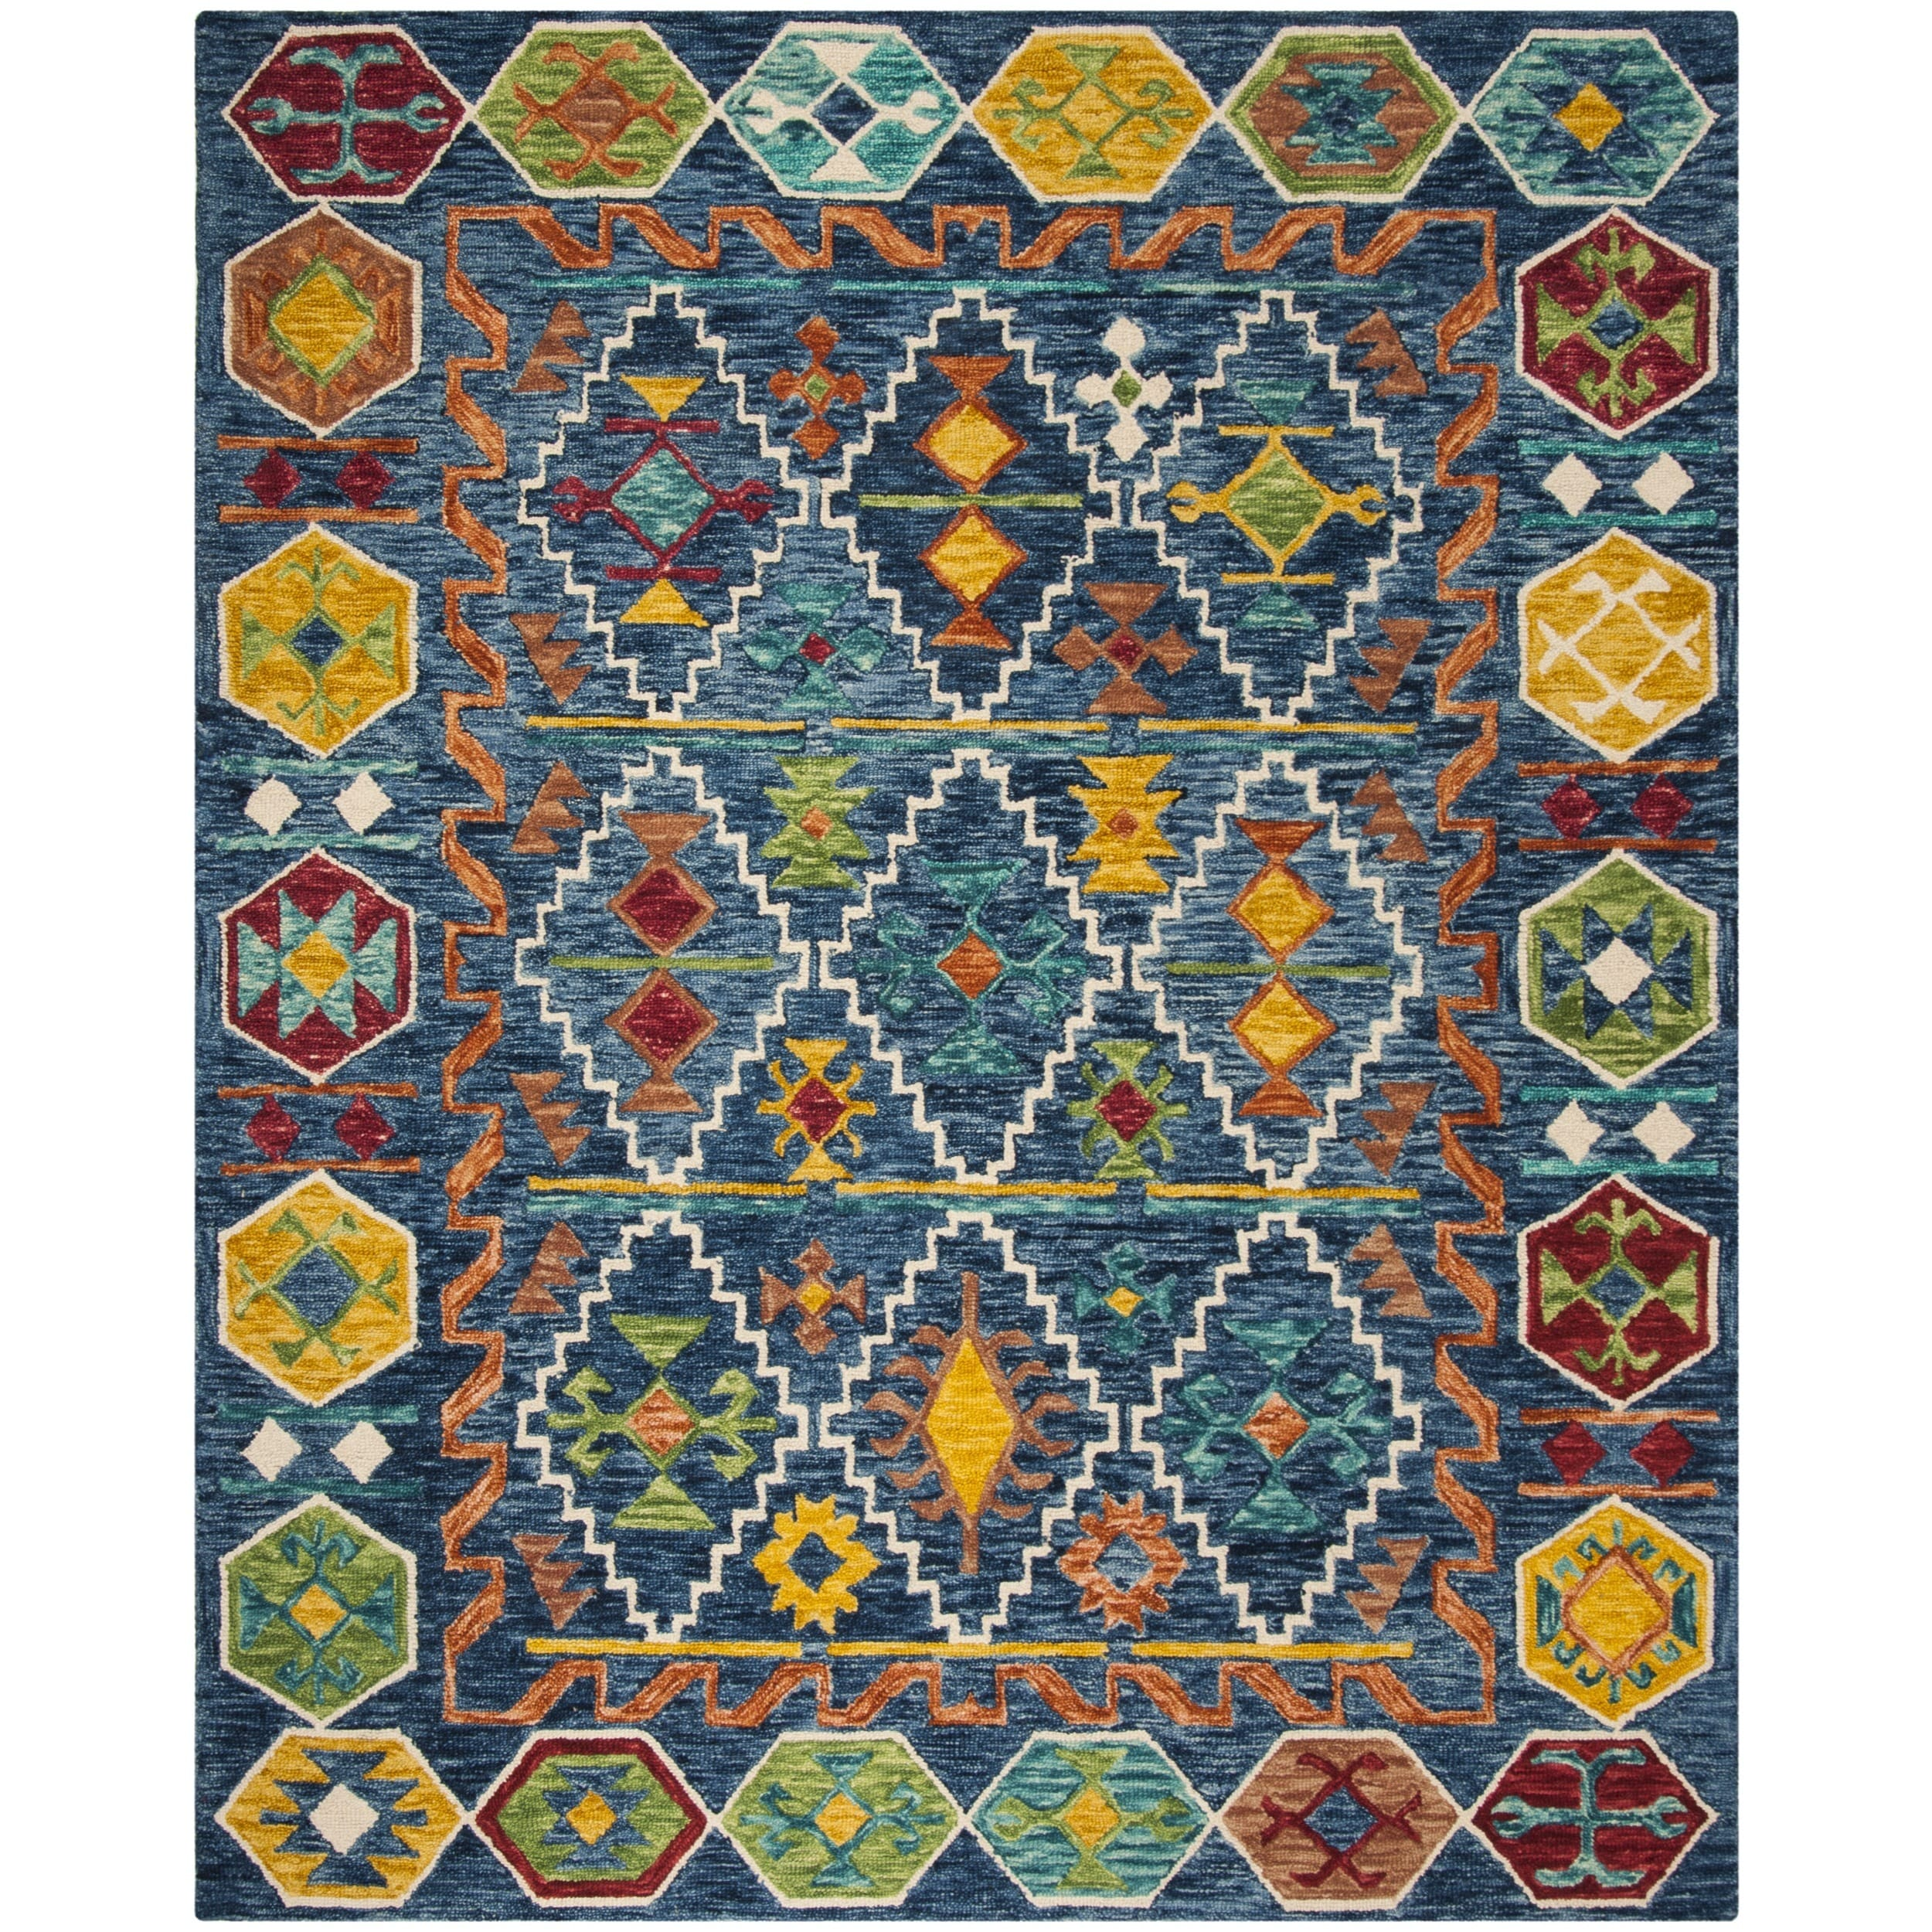 new copper fe sonoma rugs products southwestern santa colored mexico rug southwest woodwaves